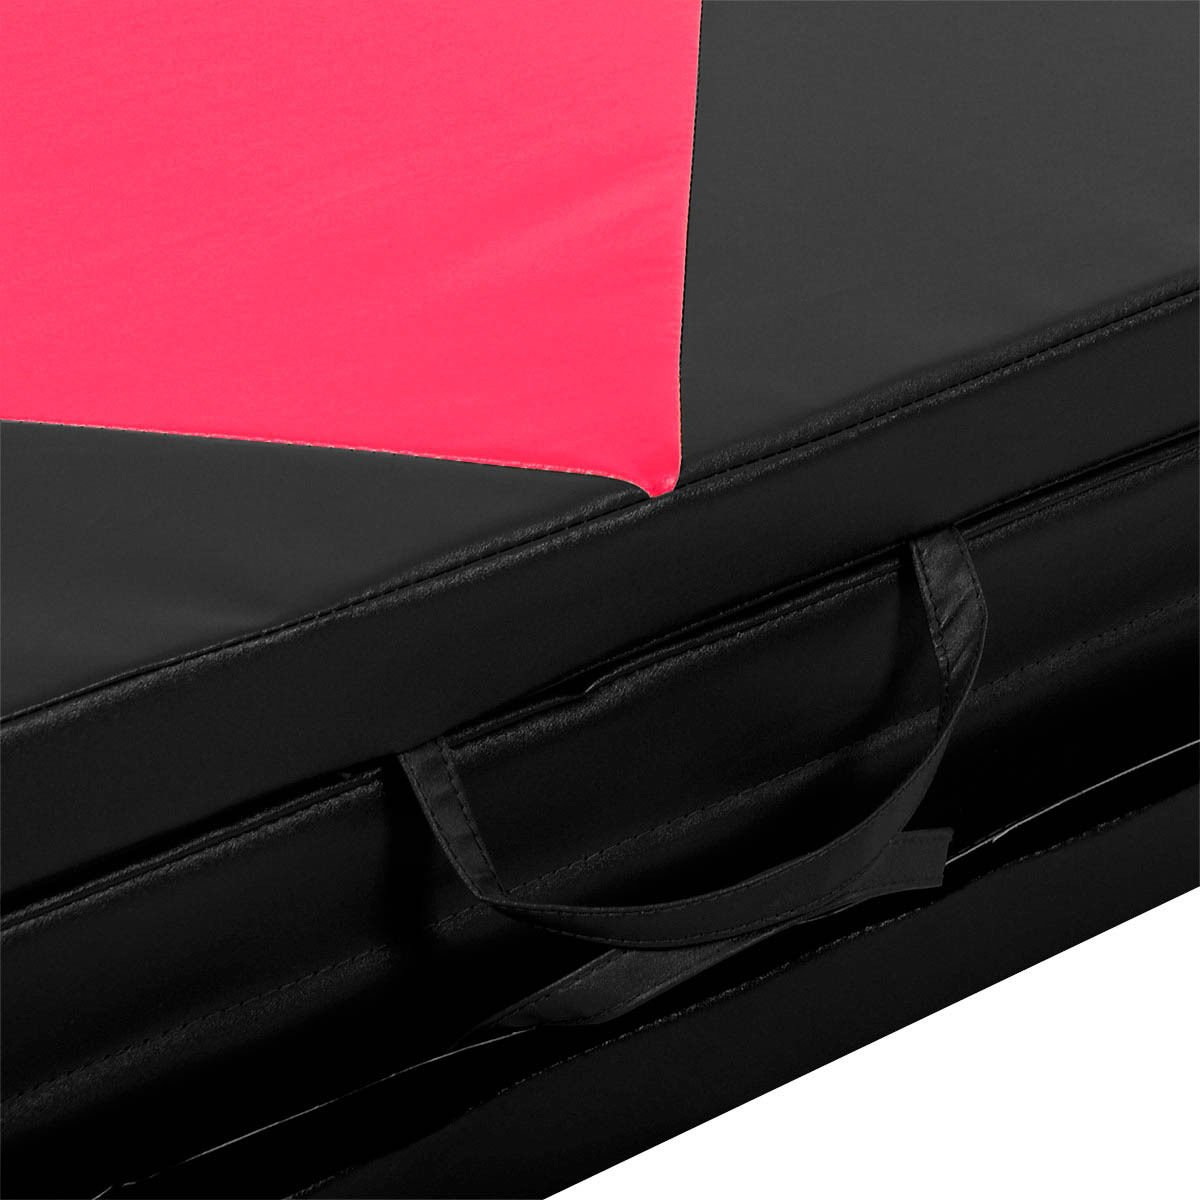 COSTWAY 4'X10'X2 Gymnastics Mat Folding Panel Thick Gym Fitness Exercise Pink/Black New by COSTWAY (Image #10)